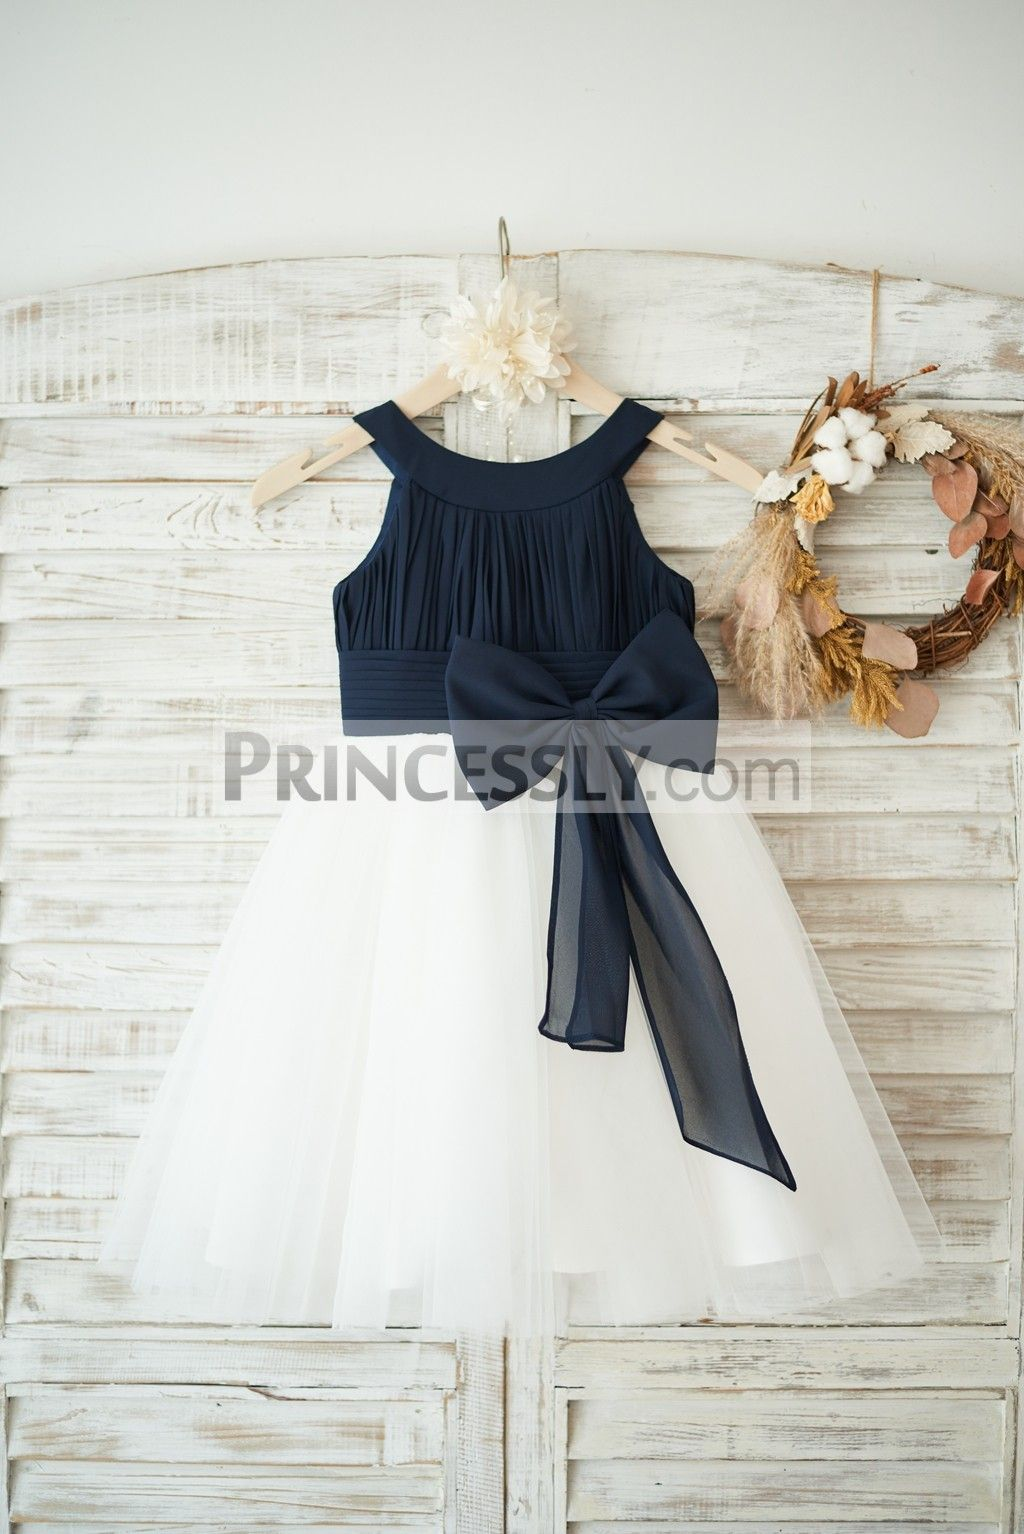 dfcac8f3f2f Princessly.com-K1003550-Navy Blue Chiffon Ivory Tulle Halter Neck Wedding  Flower Girl Dress with Bow-31